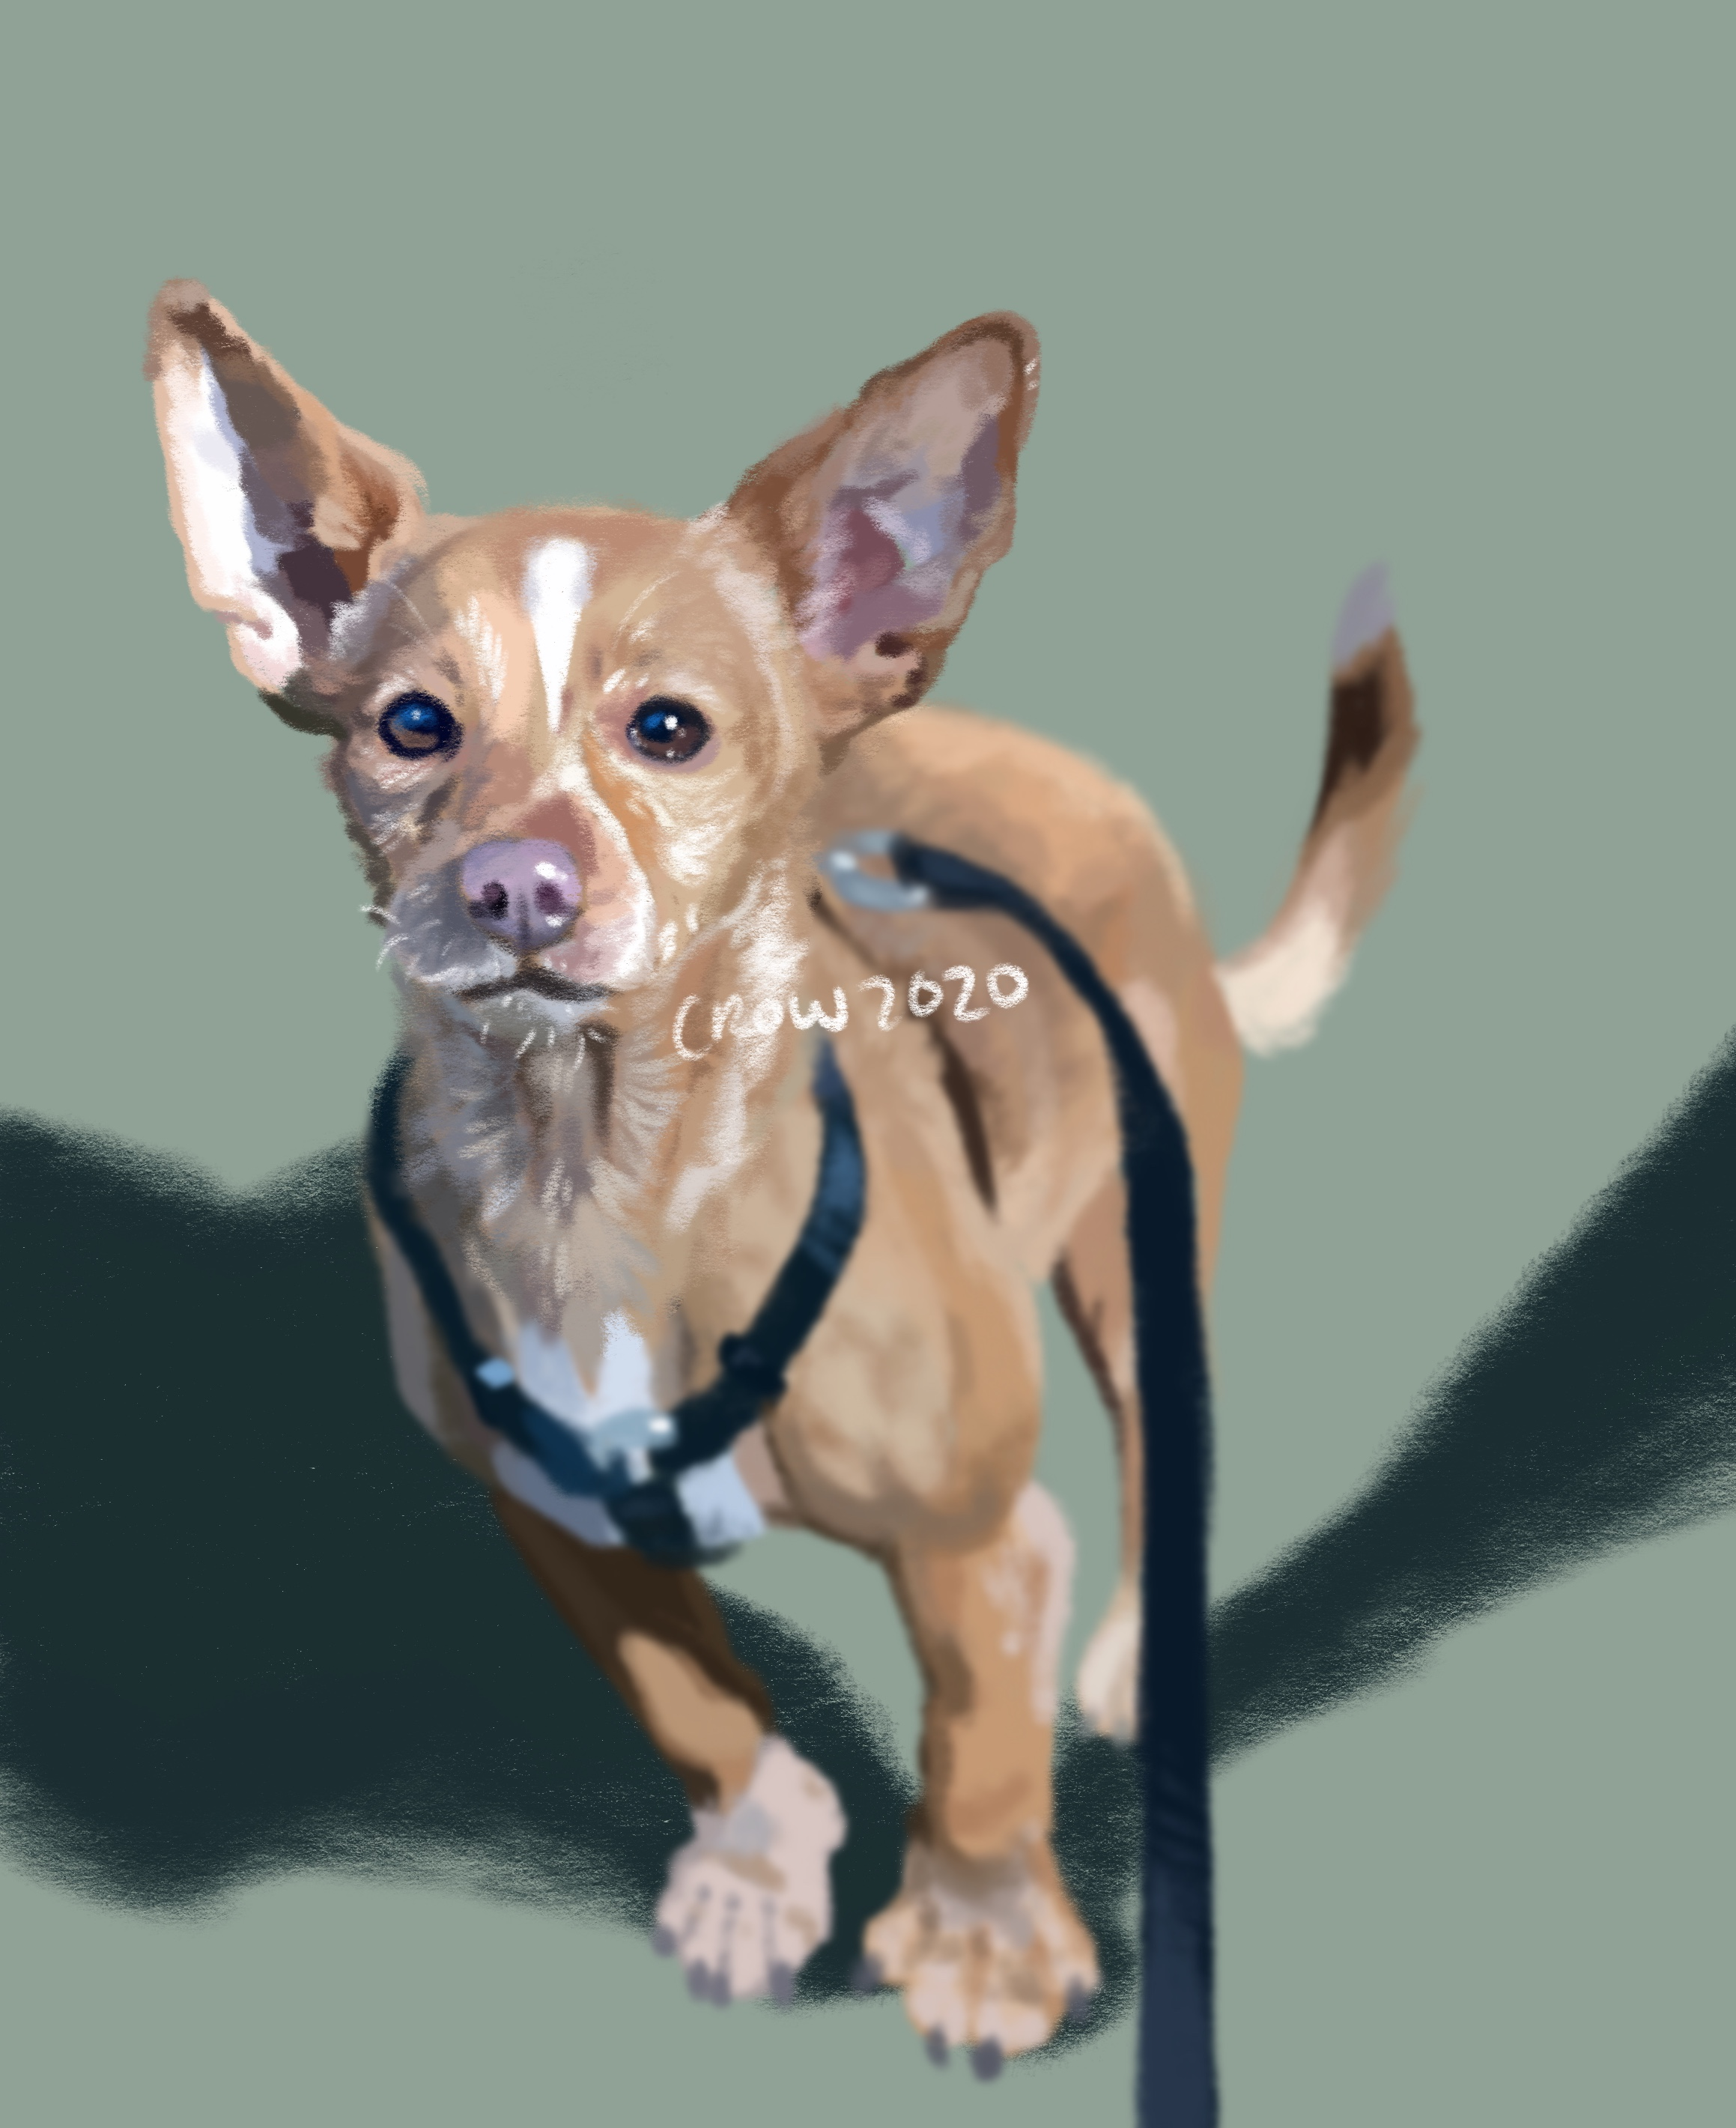 Digital illustration in a painterly style. It is of a small orange dog wearing a black harness. The background is mossy green.